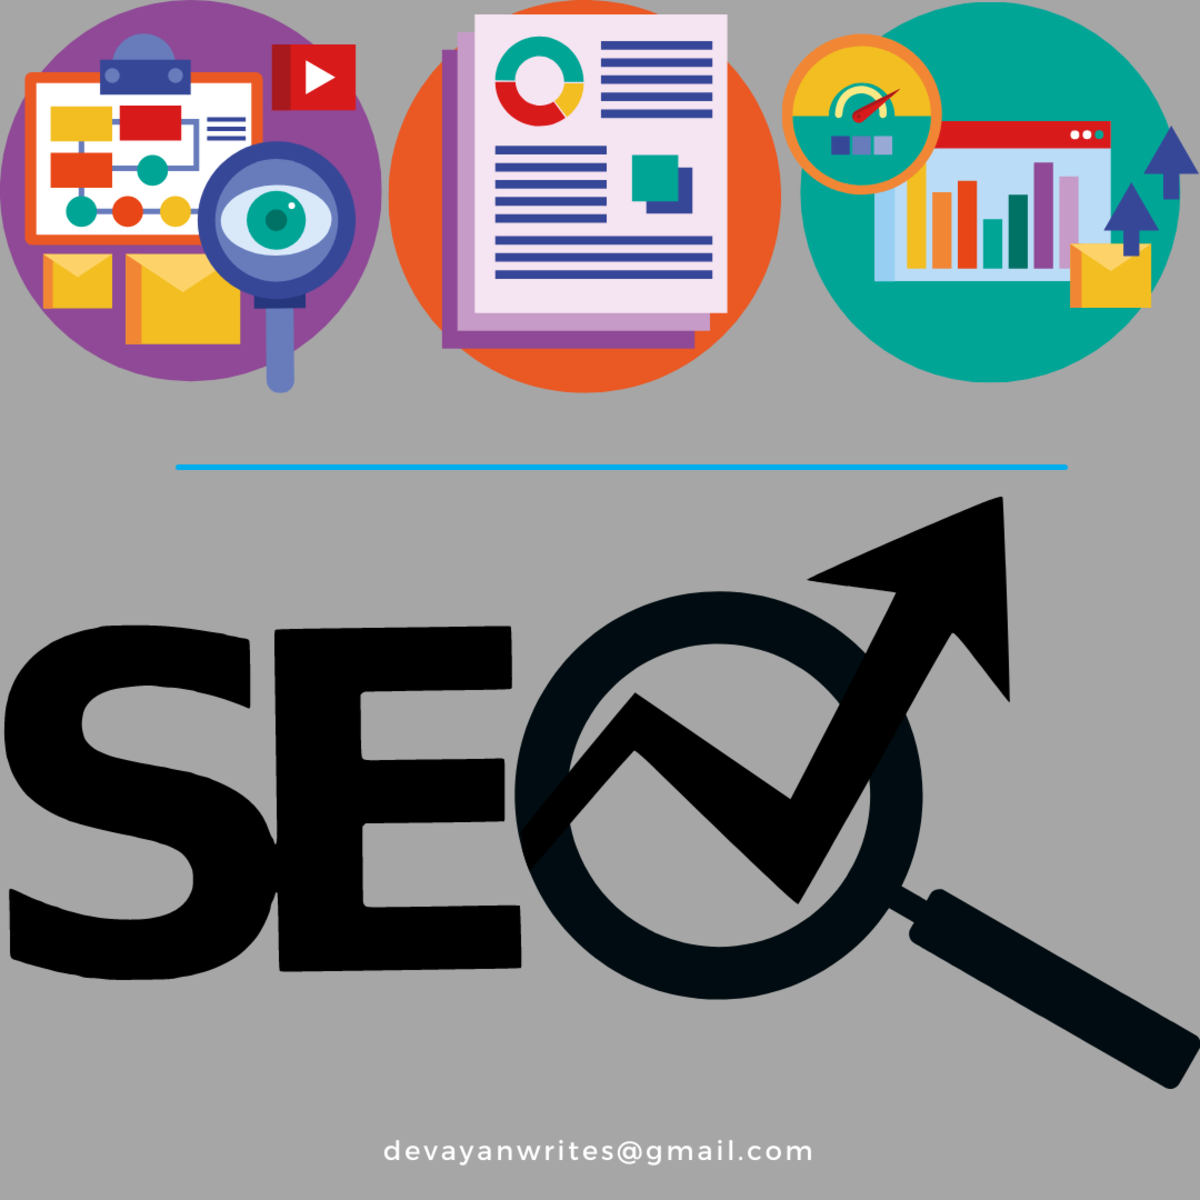 Is Digital Marketing All About Seo? What Exactly Is Digital Marketing?